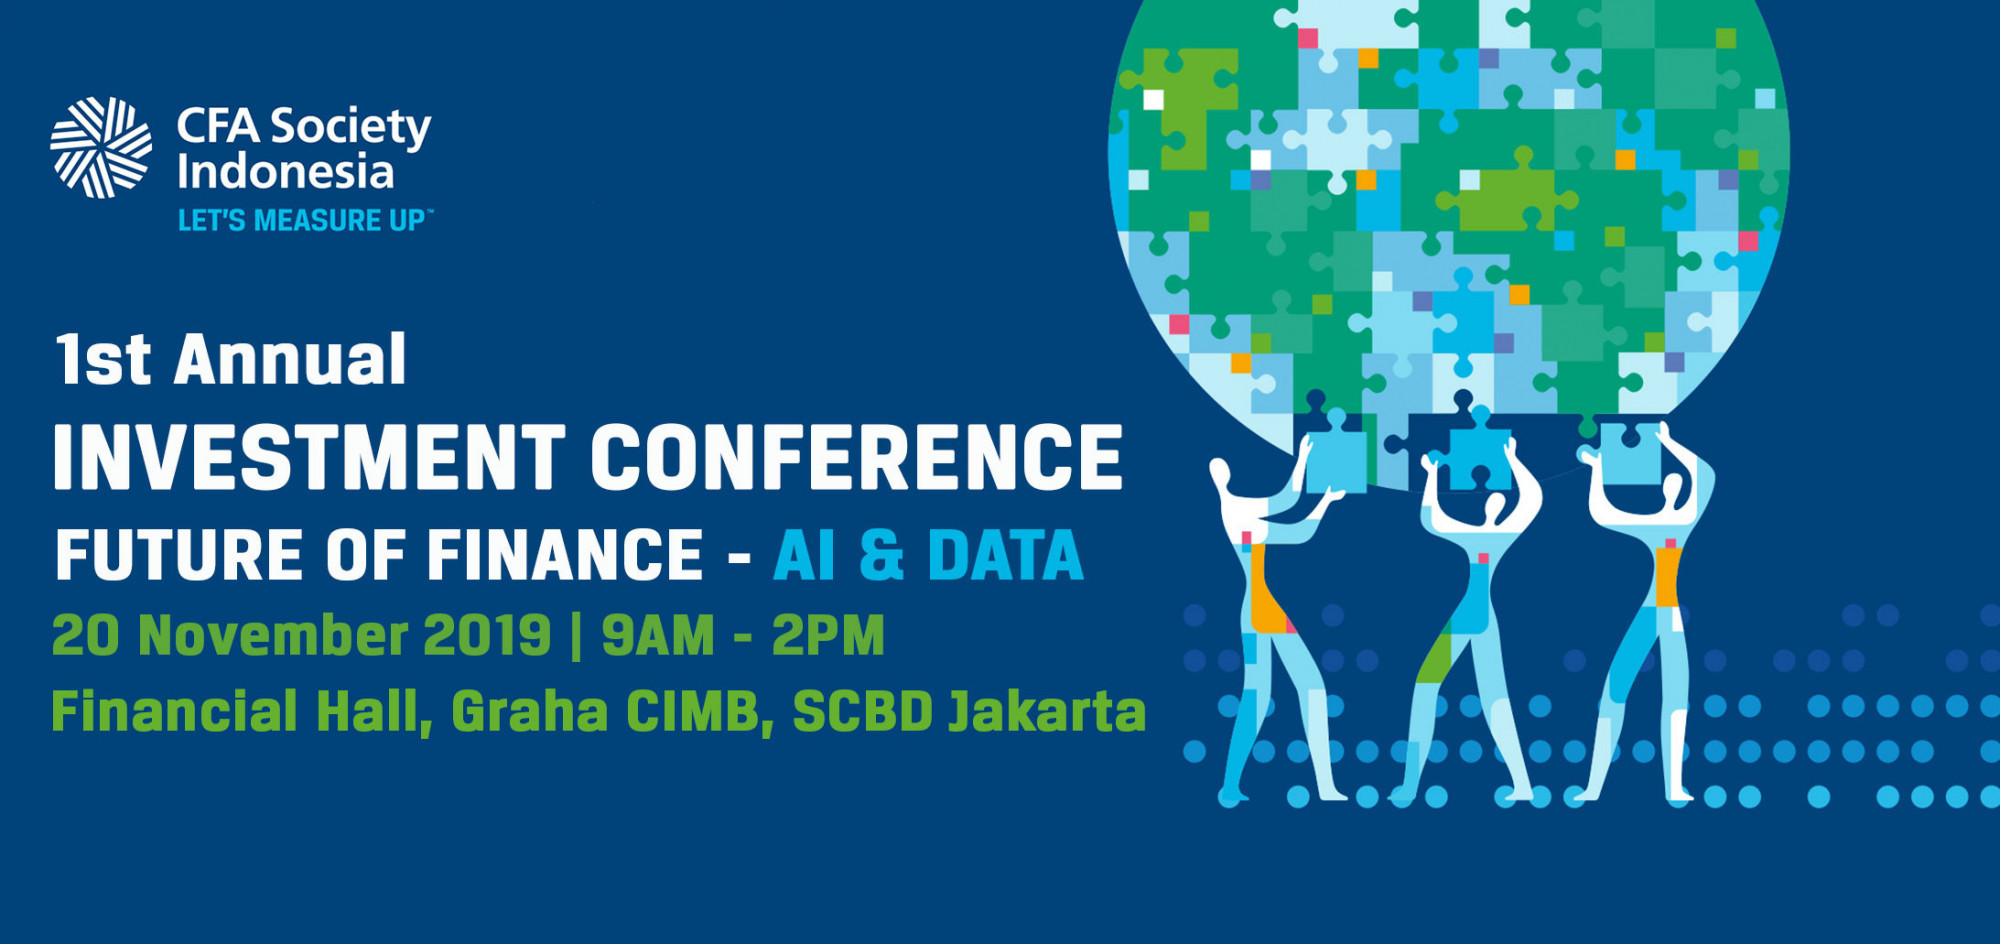 Future of Finance - AI & Data (CFA Society Indonesia 1st Annual Investment Conference)